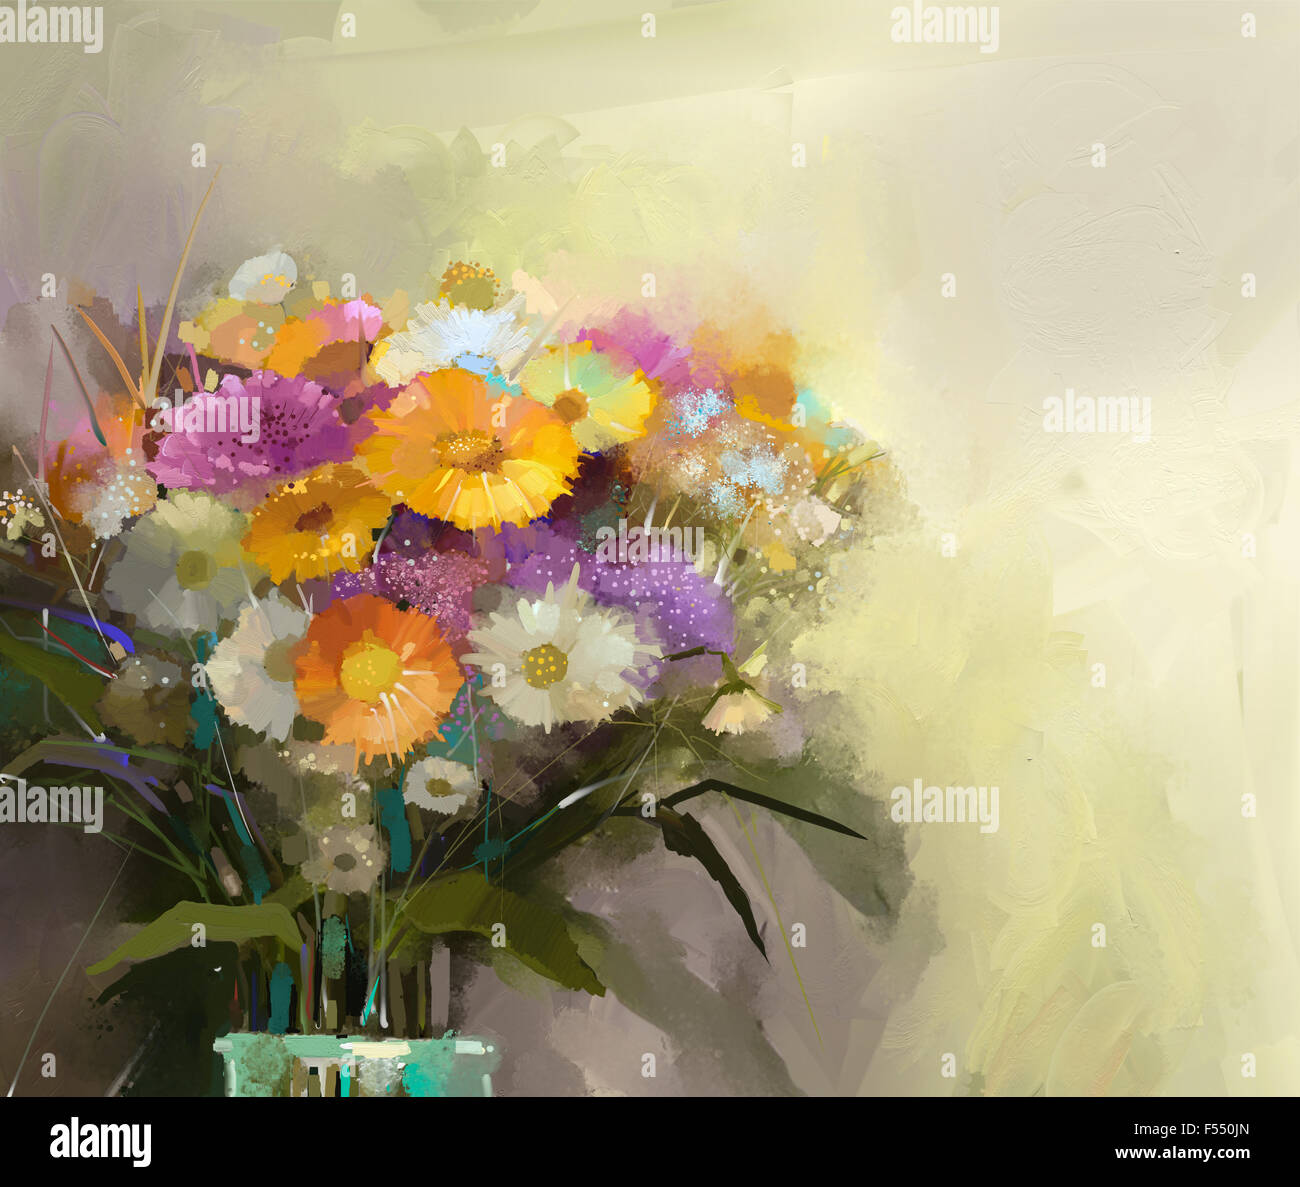 Bouquet flowers oil painting stock photos bouquet flowers oil oil painting still life bouquet of flowers in vase stock image izmirmasajfo